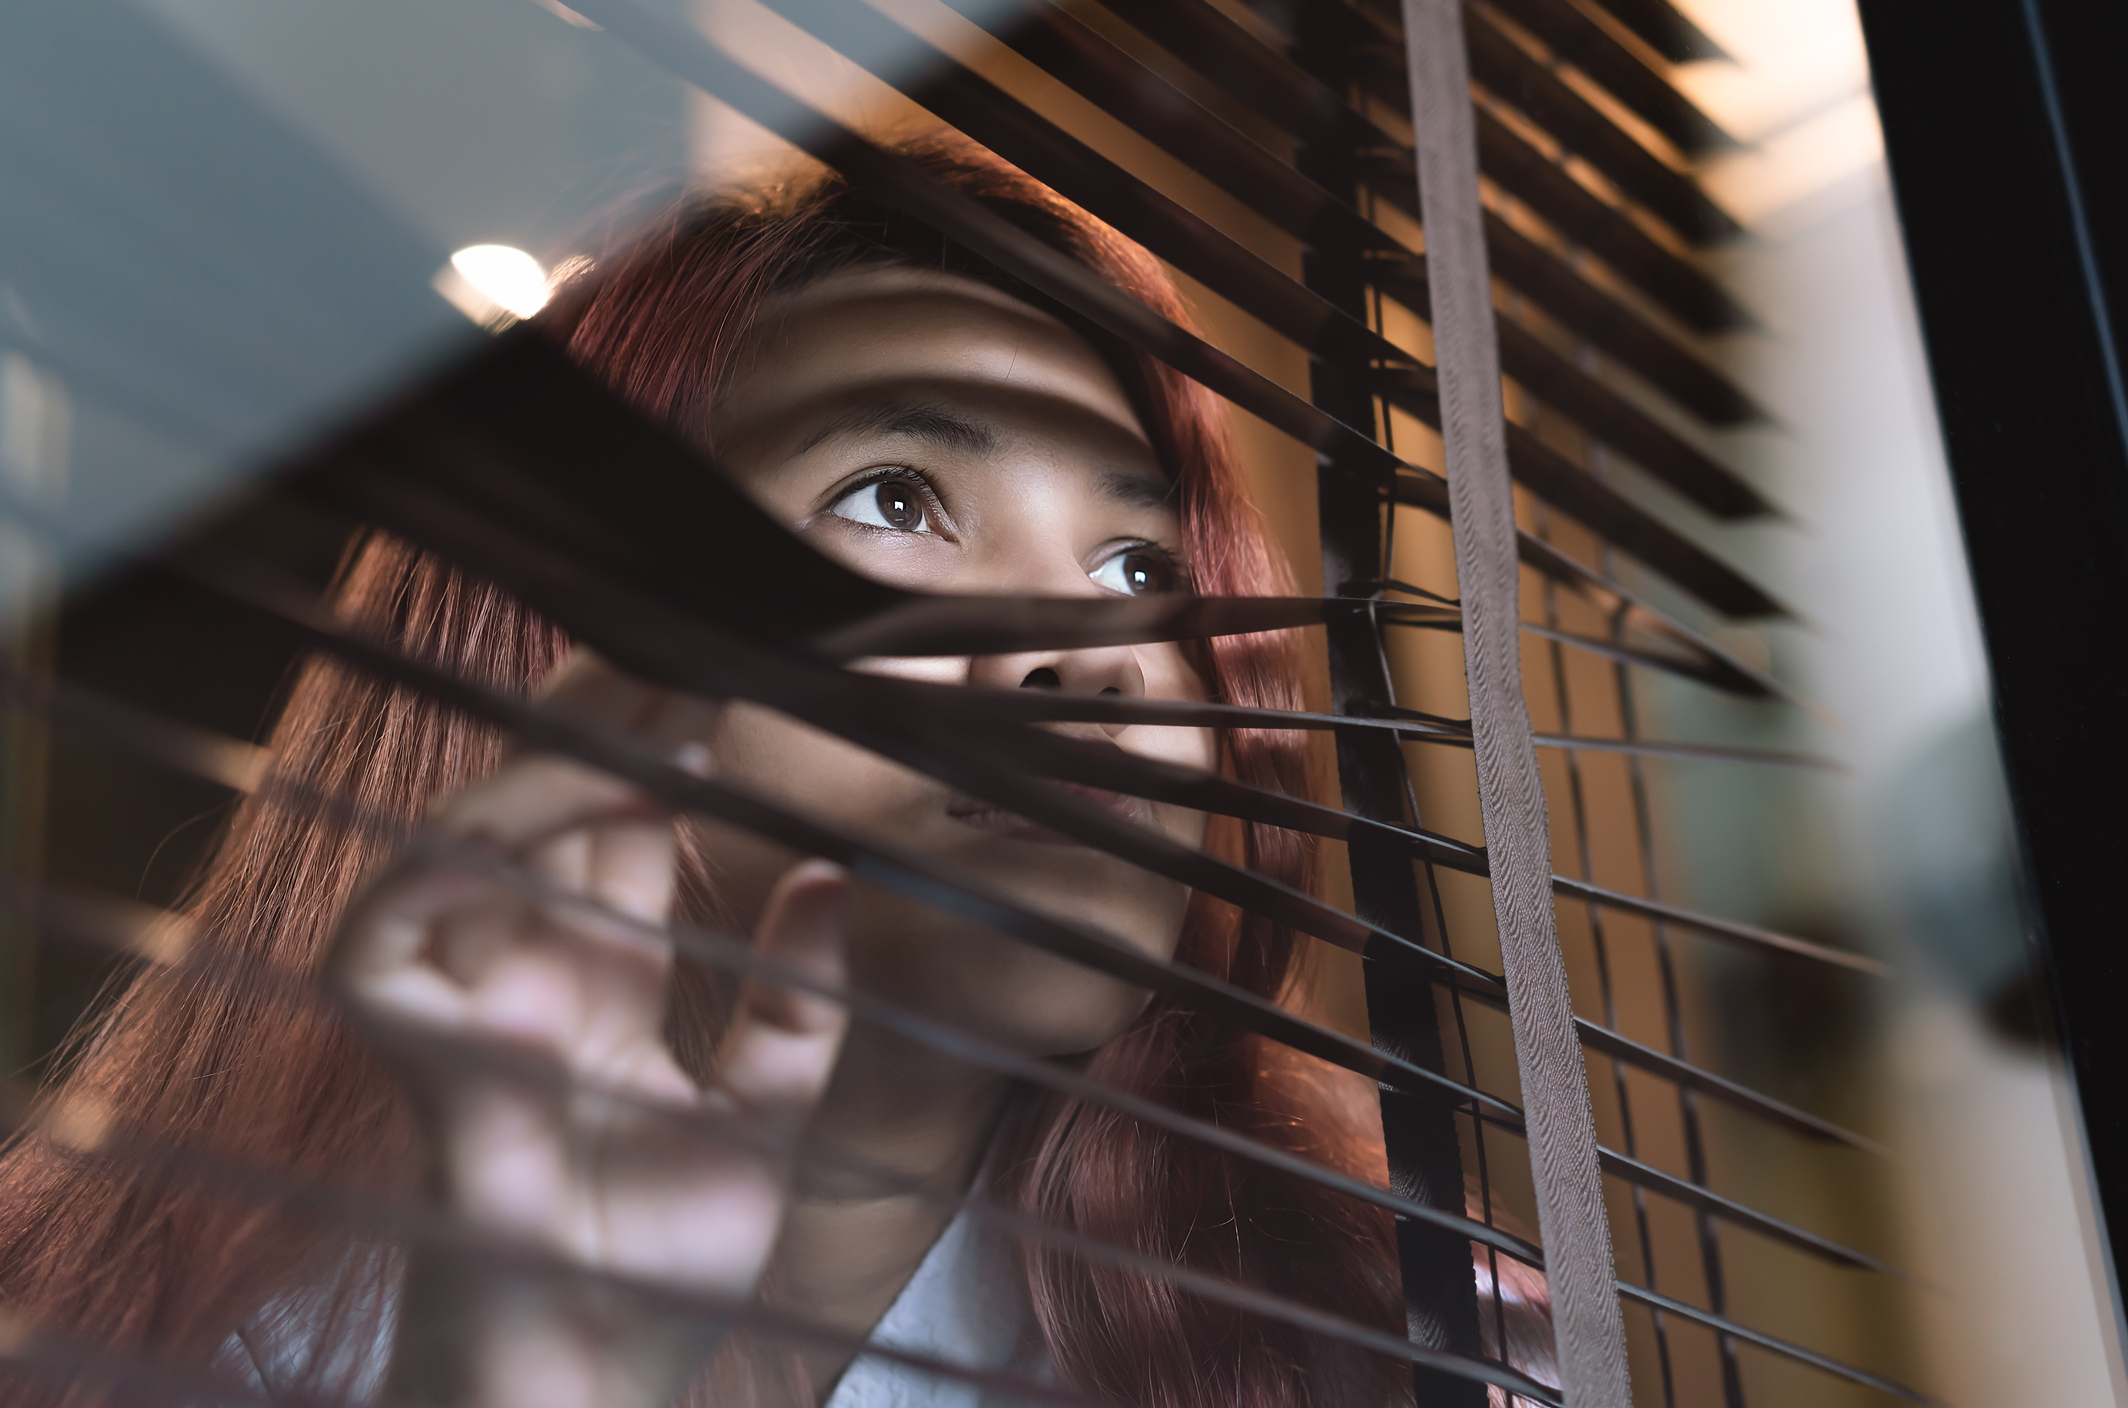 Asian woman looking through window blinds spying on neighbours - Young lonely millennial woman peeping through glass observing gossip and action outdoors - introvert, spy and intrusive concepts. Image credit: iStock